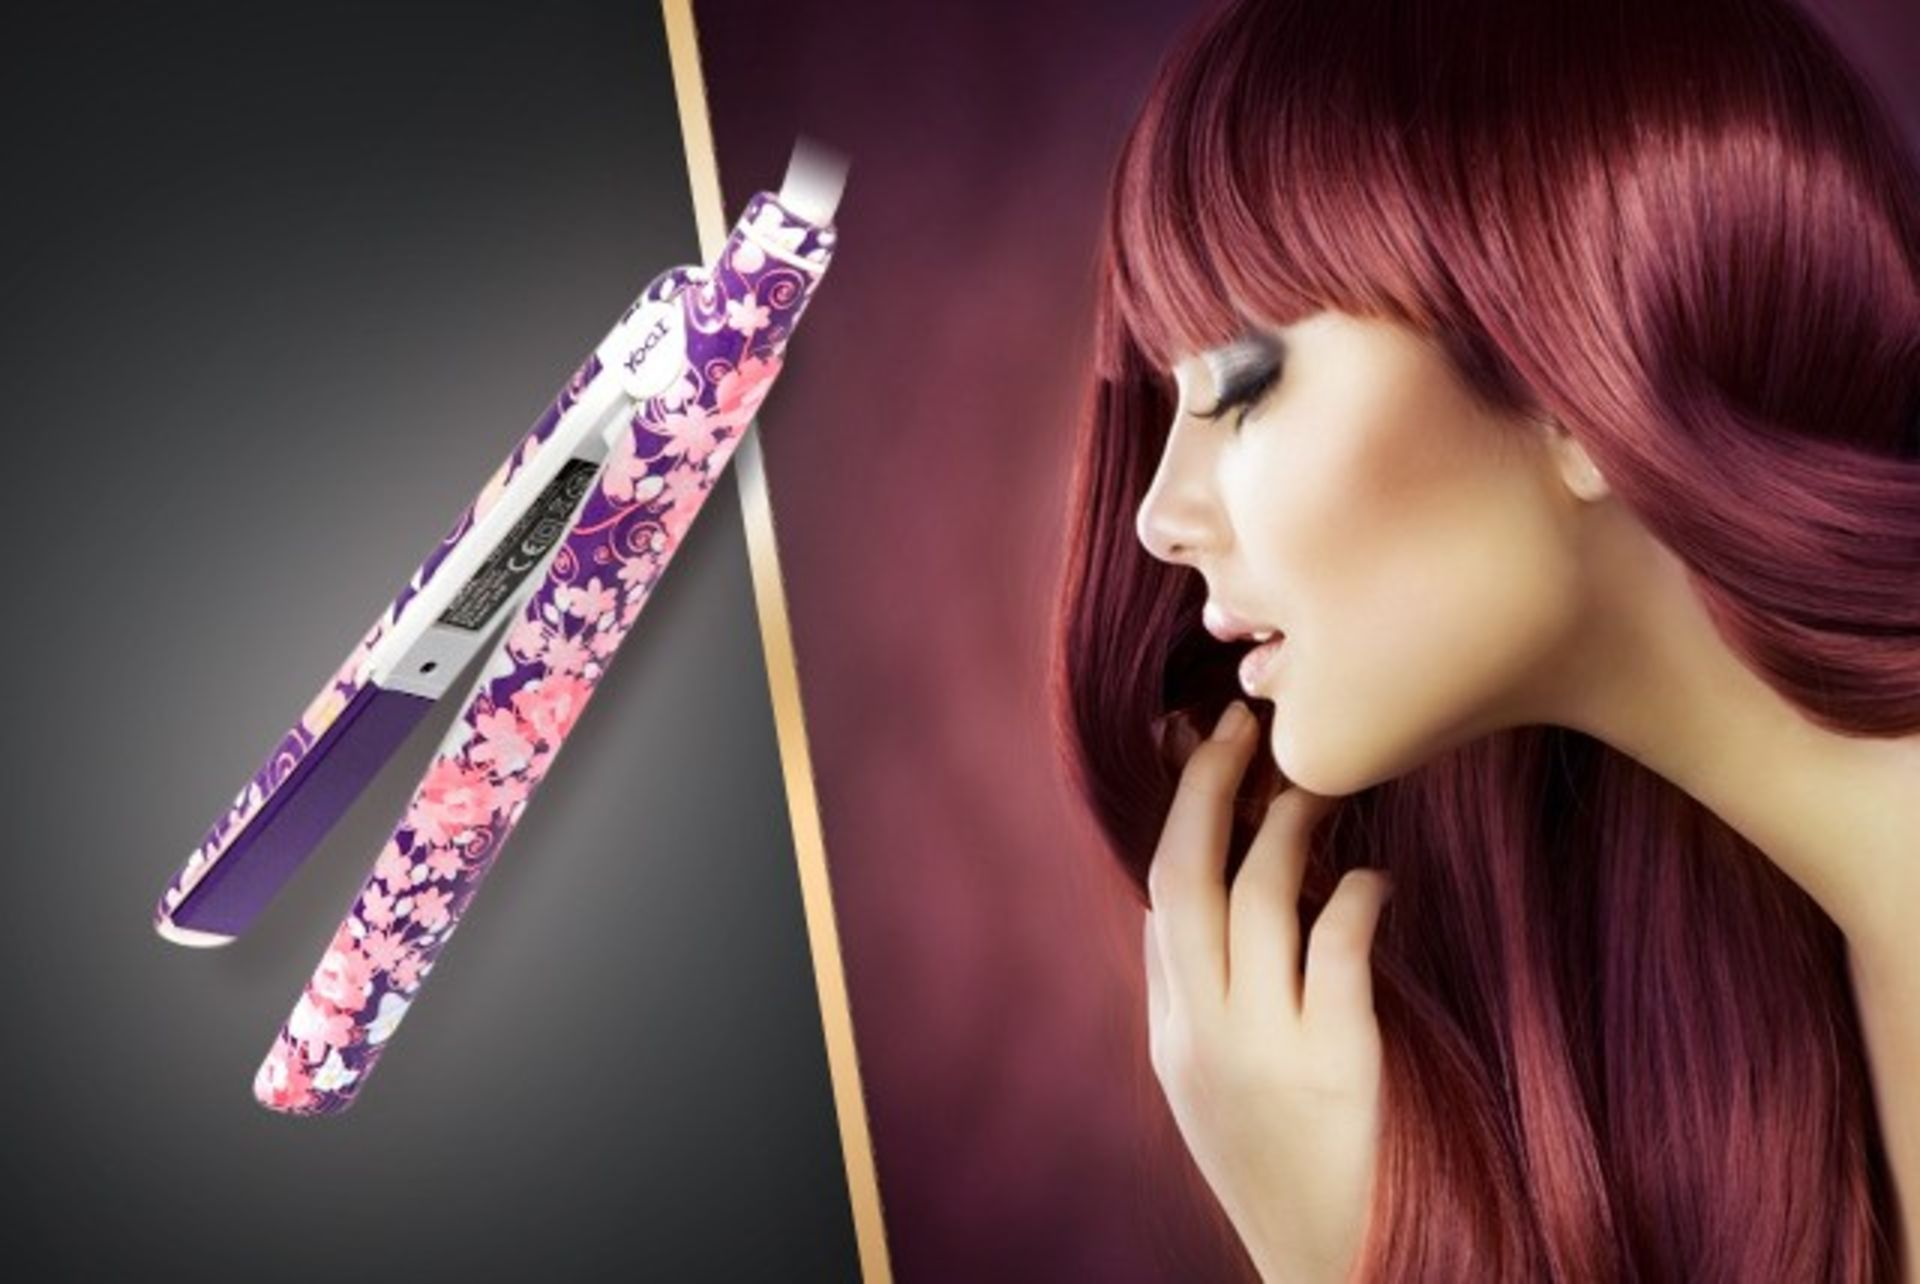 Lot 10772 - V Brand New Yogi Hair Straighteners With Ceramic & Tourmaline Infuded Floating Plates - Variable